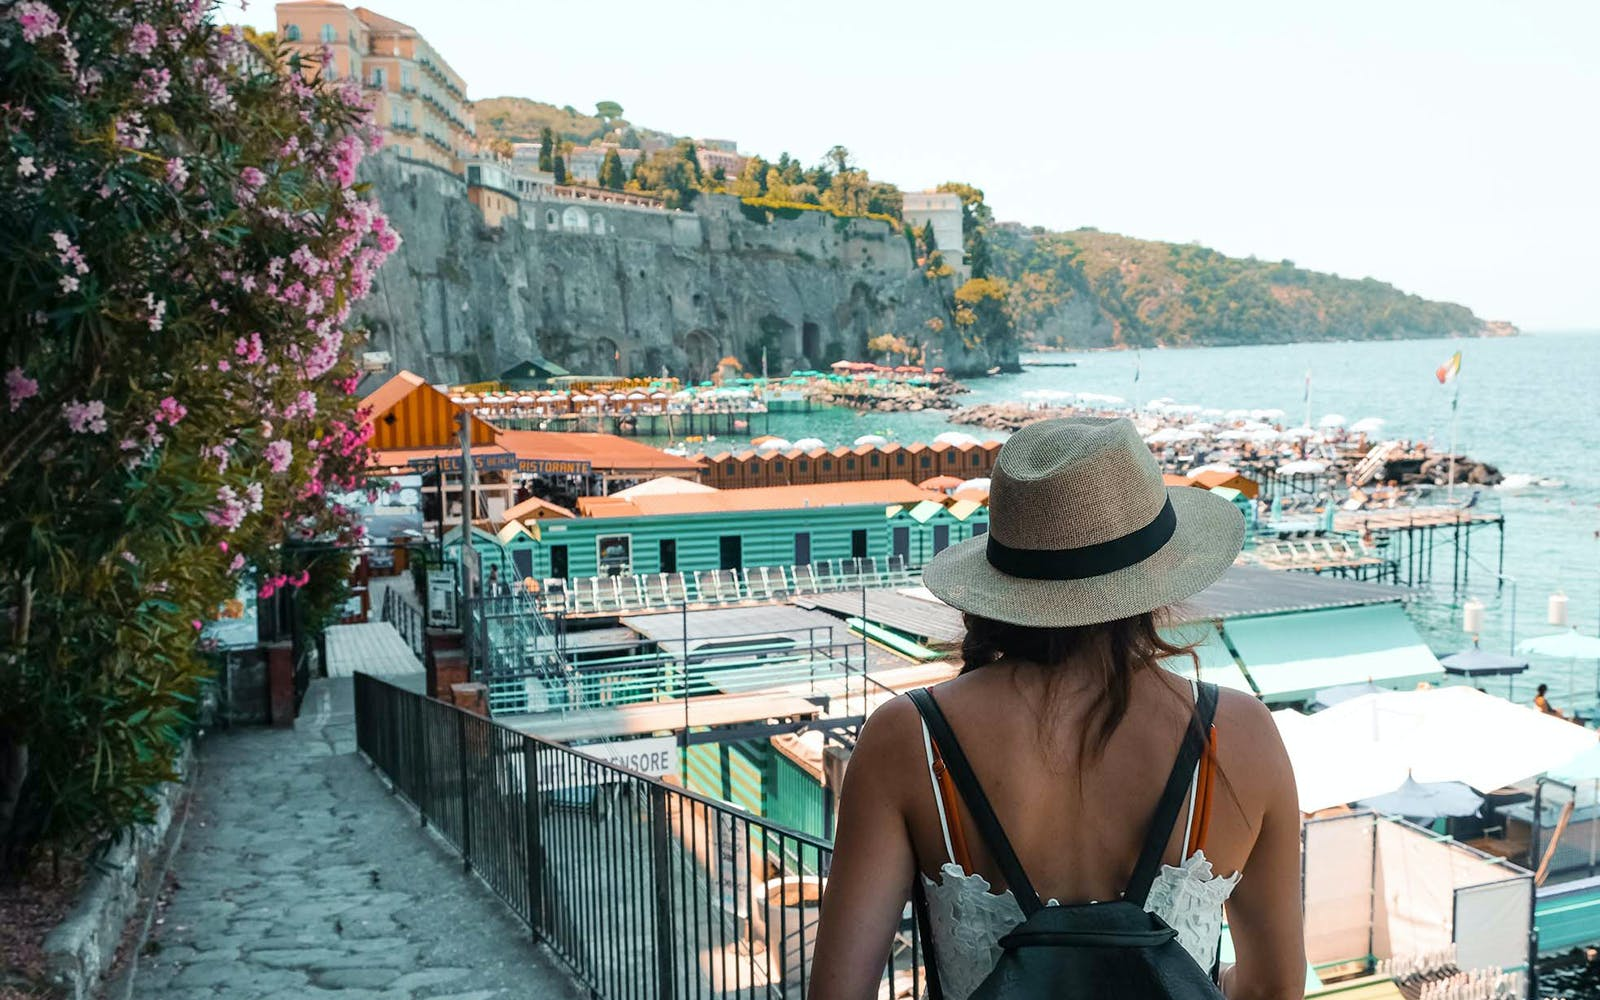 Sorrento, Positano and Amalfi Full Day Tour from Naples